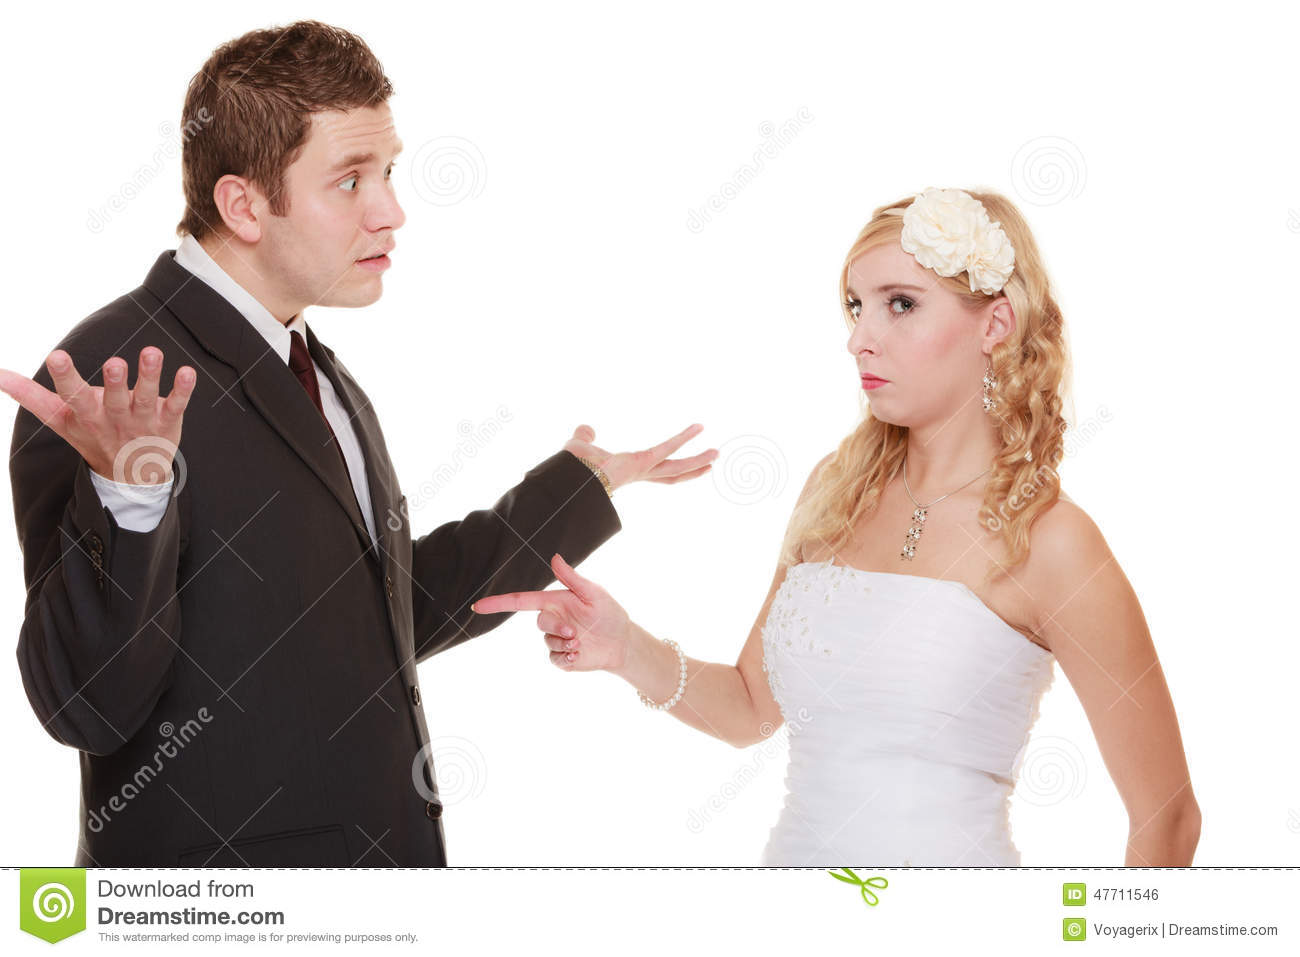 What Causes Insecurity and Jealousy in a Relationship